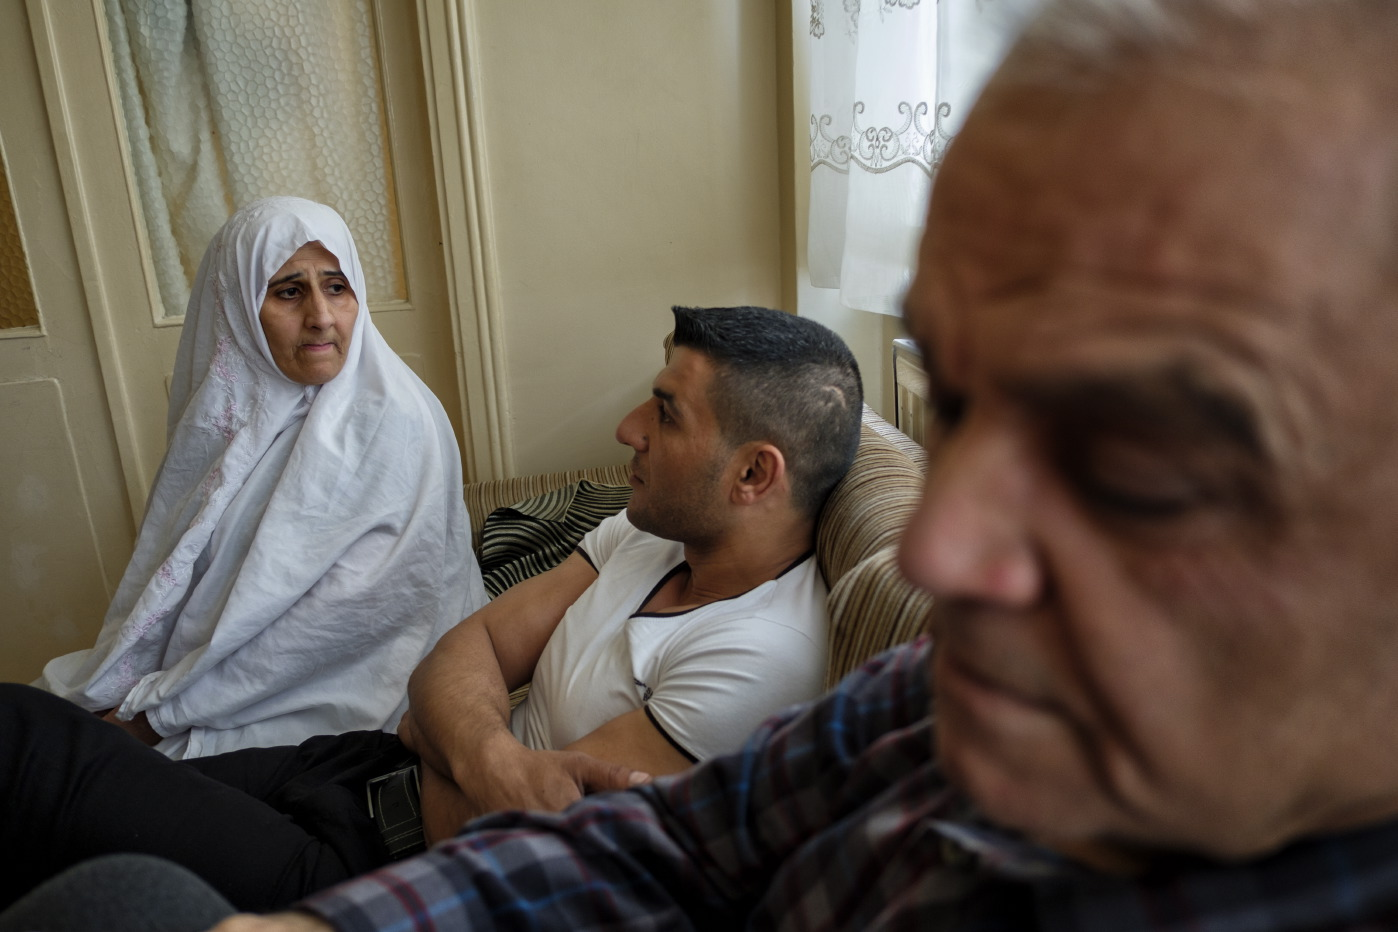 39-year-old award-winning Syrian bodybuilder, Ibrahim Shehabi, is seen with his parents, Radwan and Nadia. After being detained and tortured for 30 months in a prison in Aleppo, Ibrahim moved with his family to Turkey, where they have been living for more than two years. Istanbul, Turkey 2016. © Matteo Bastianelli